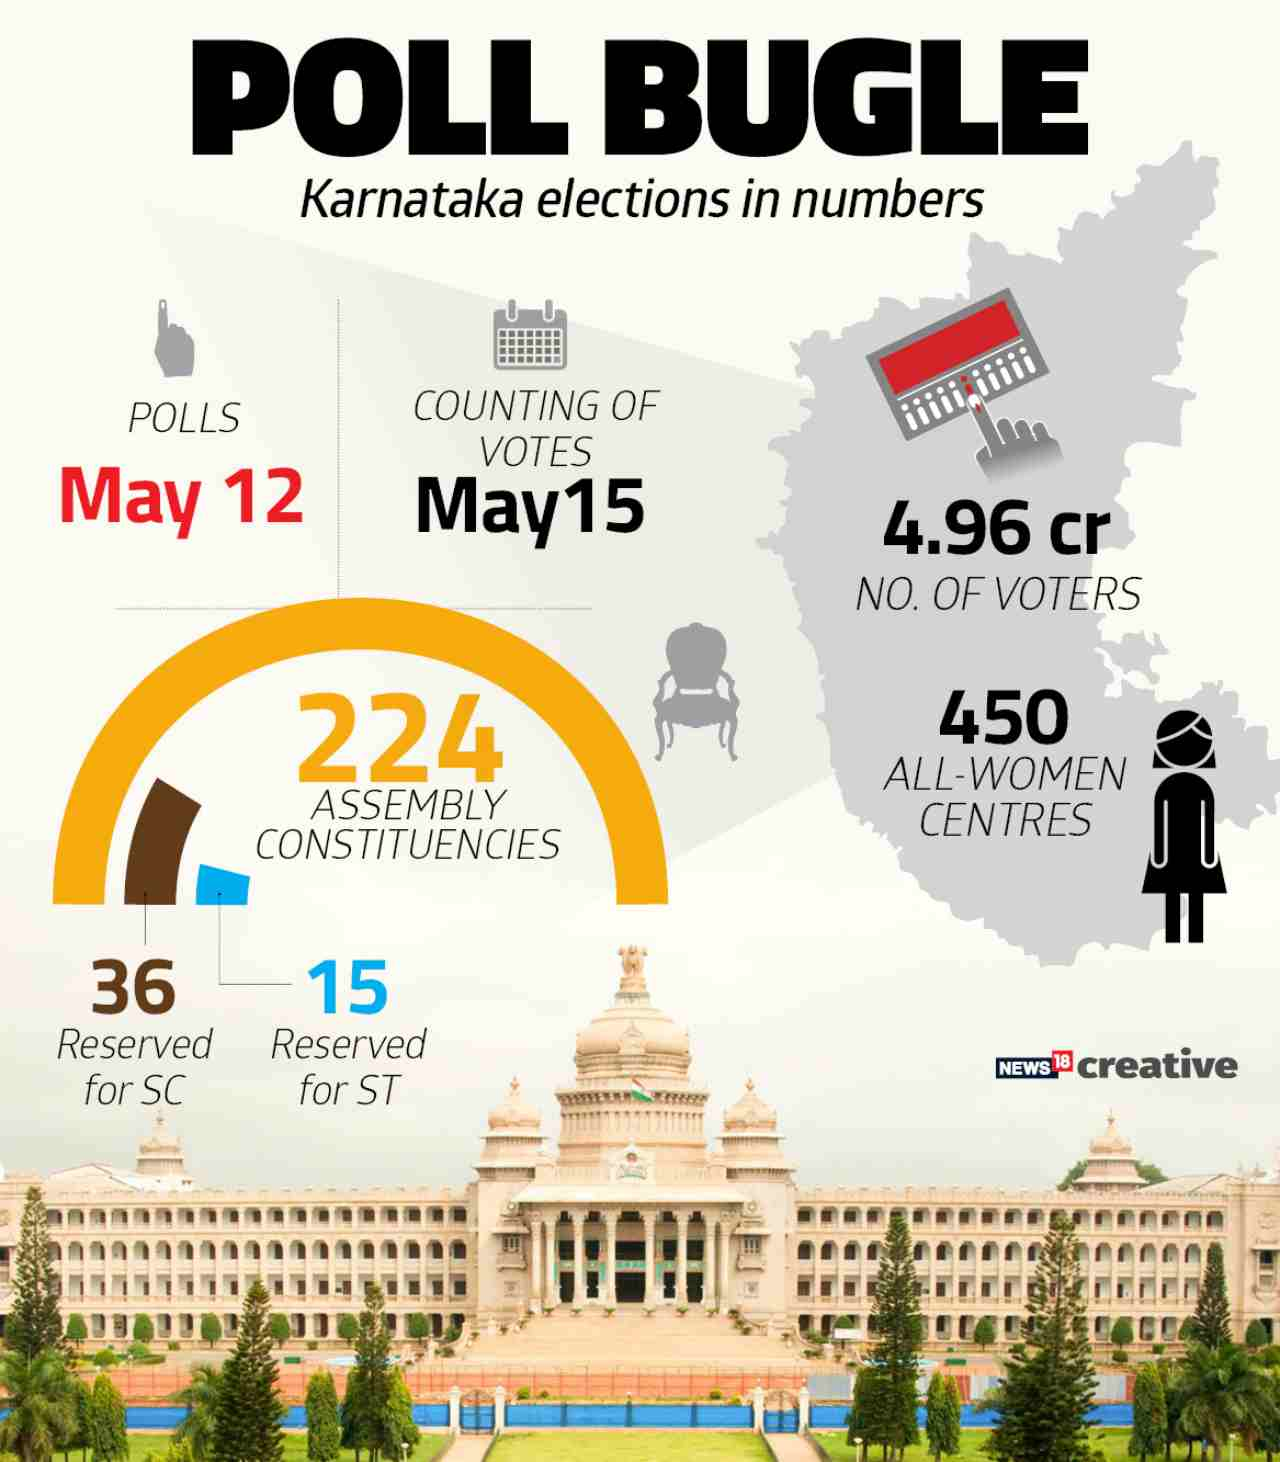 Poll Bugle | There are 224 assembly constituencies in the state of which 51 are reserved. Any party or a coalition getting 113 seats will get a right to form the government mandated by nearly 5 crore voters of Karnataka.